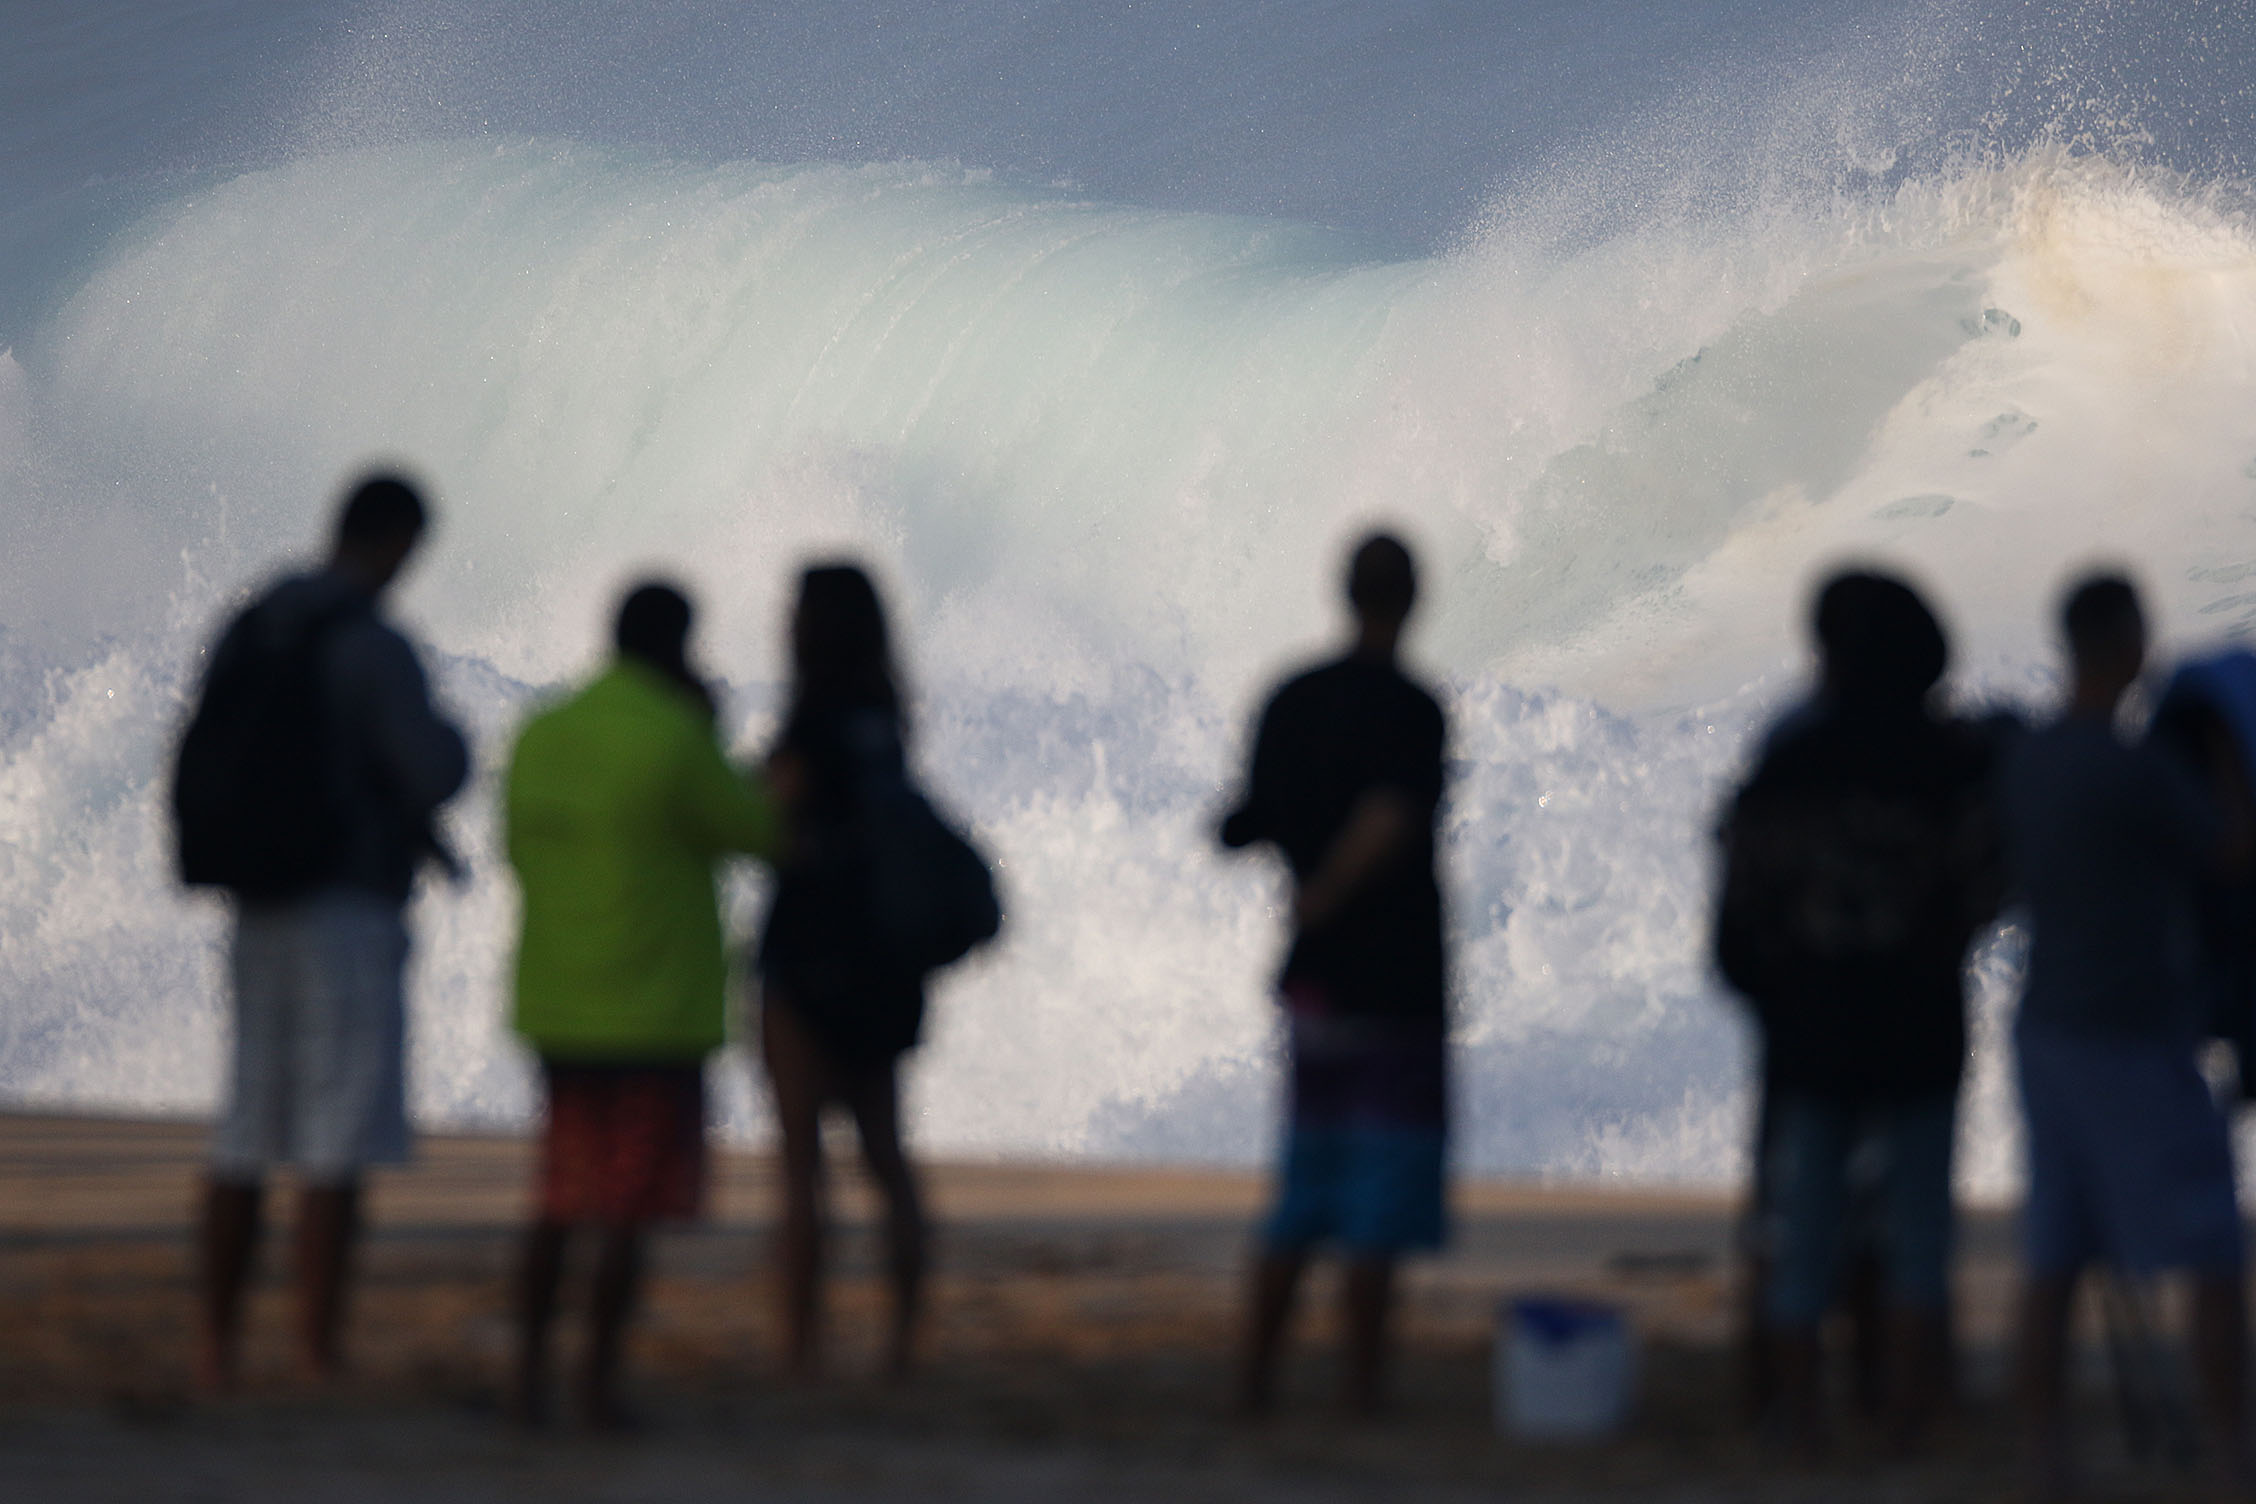 <p>Beachgoers watch the large surf at the Banzai Pipeline. Winter waves are sometimes so epic you&#8217;d think the hazards are obvious, but lifeguards issue plenty of warnings anyway.</p>